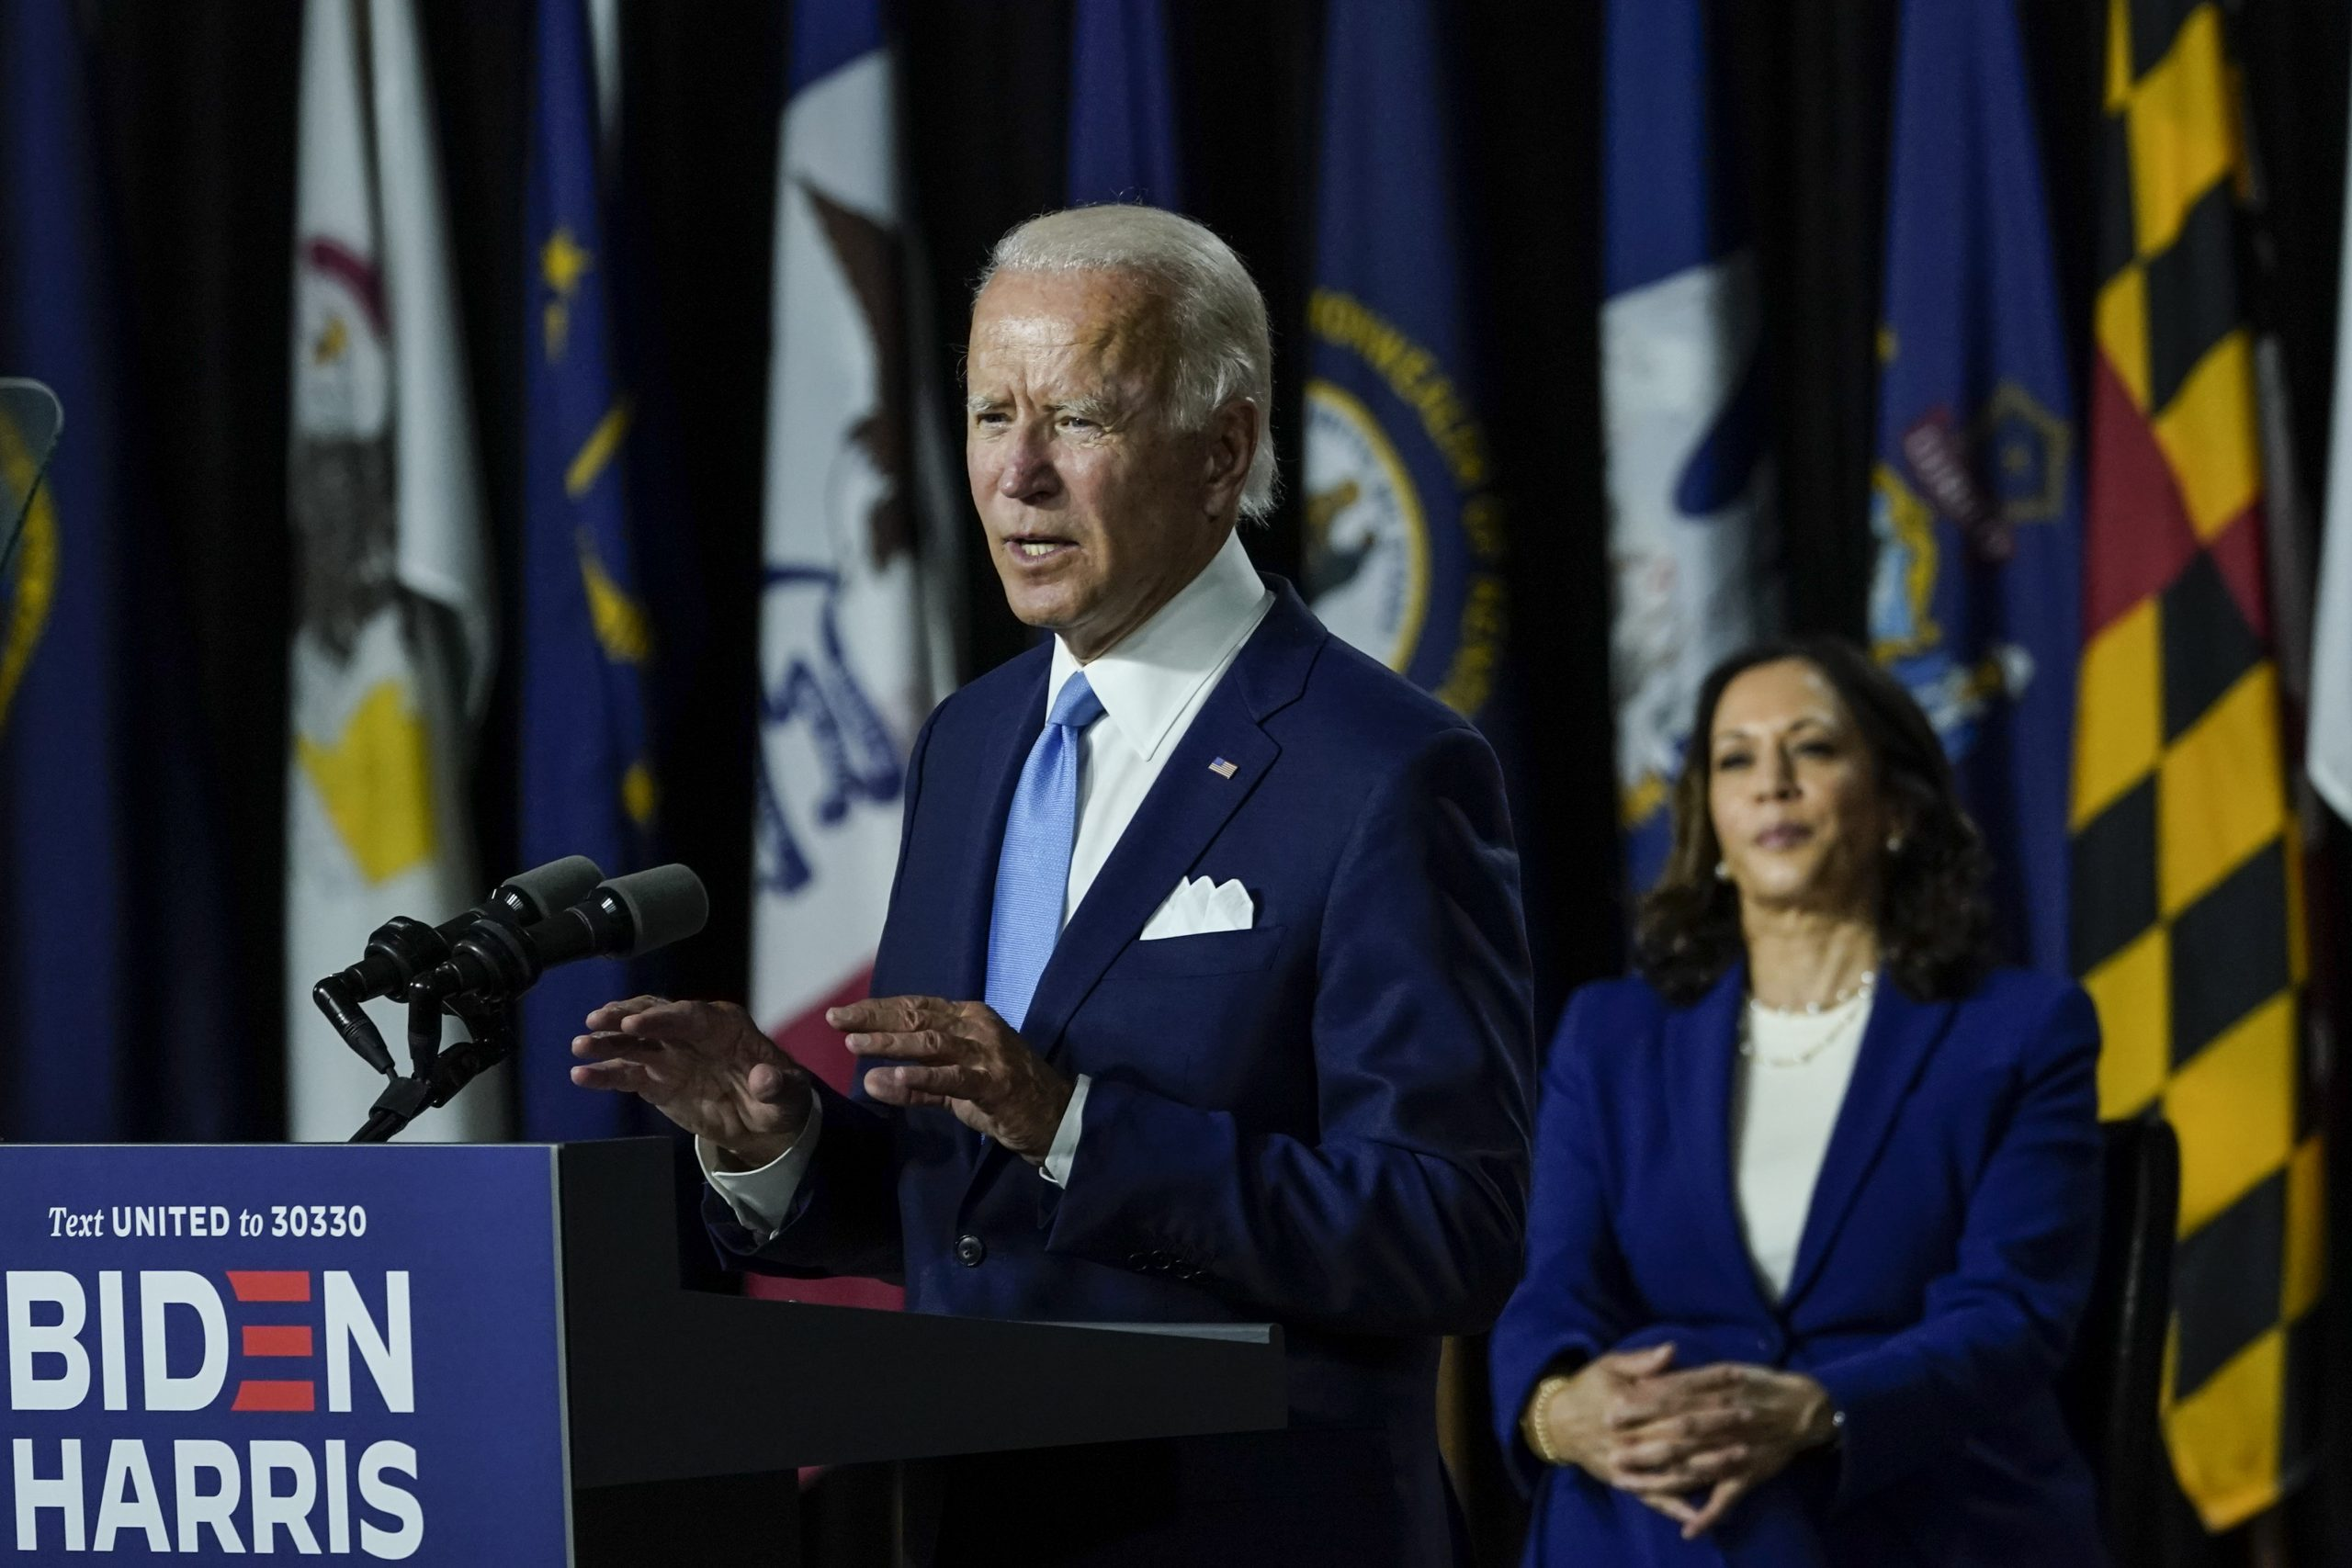 Joe Biden (L) speaks as his running mate Sen. Kamala Harris (D-CA) looks on.   (Photo by Drew Angerer/Getty Images)